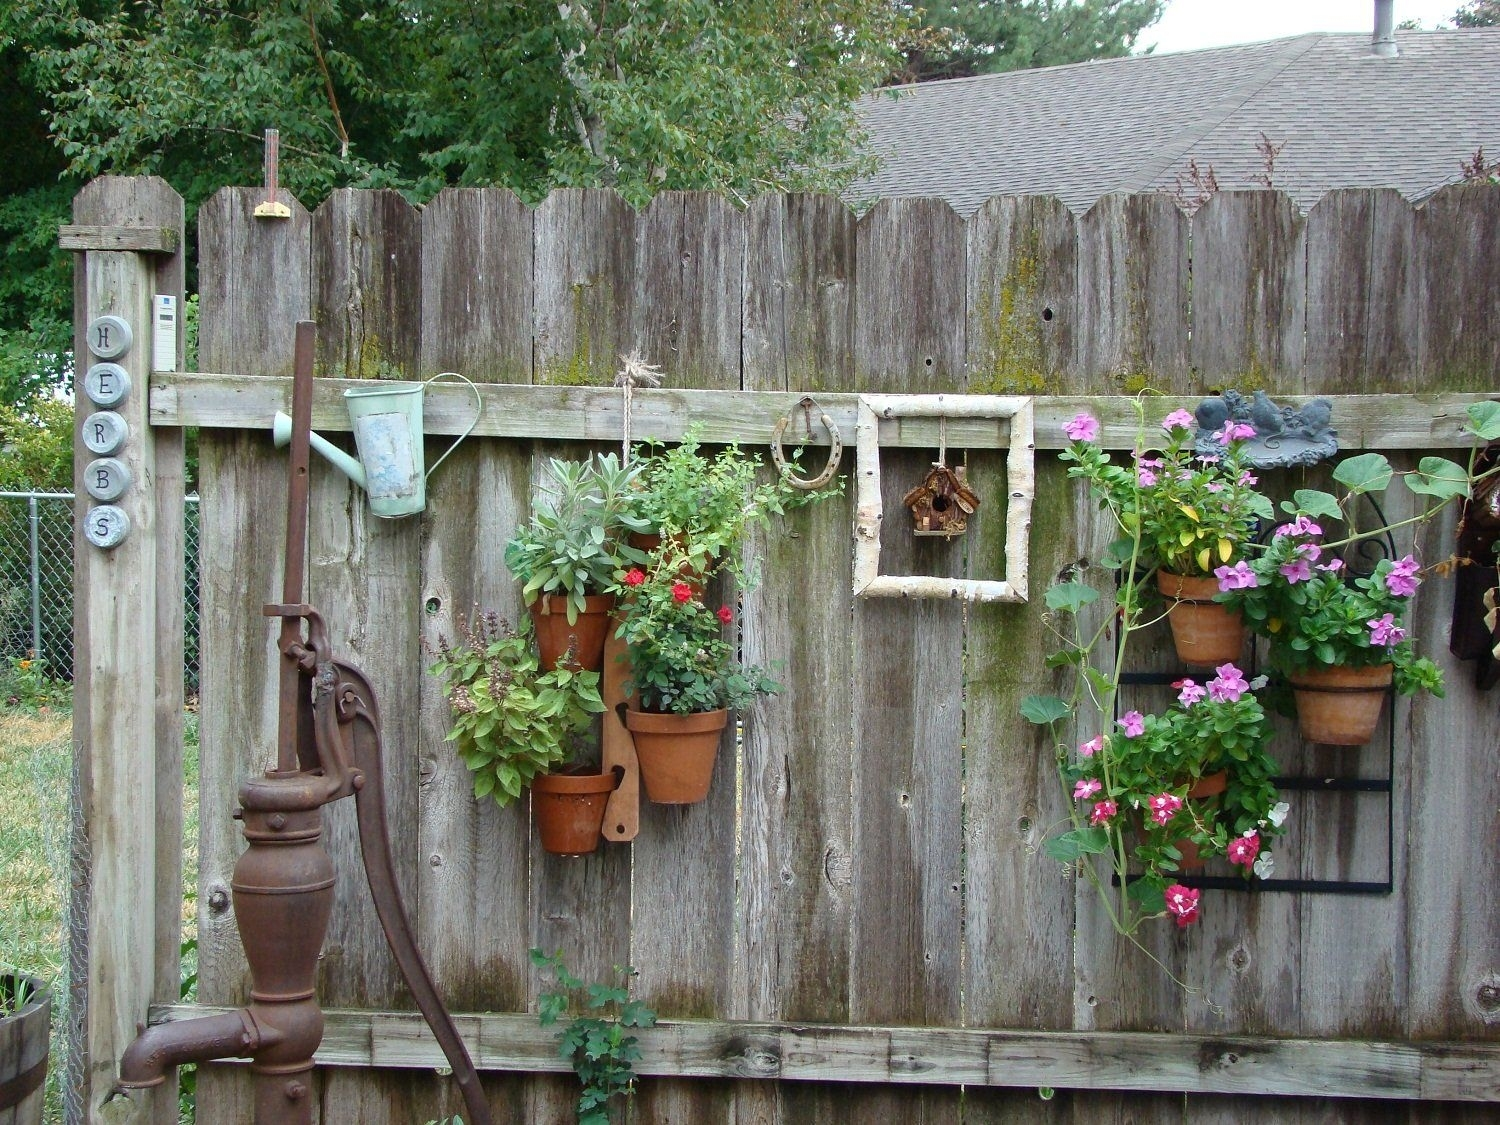 Old-And-Rustic-Backyard-Garden-Fence-Decoration-With-Vertical with regard to Rustic Backyard Garden Ideas